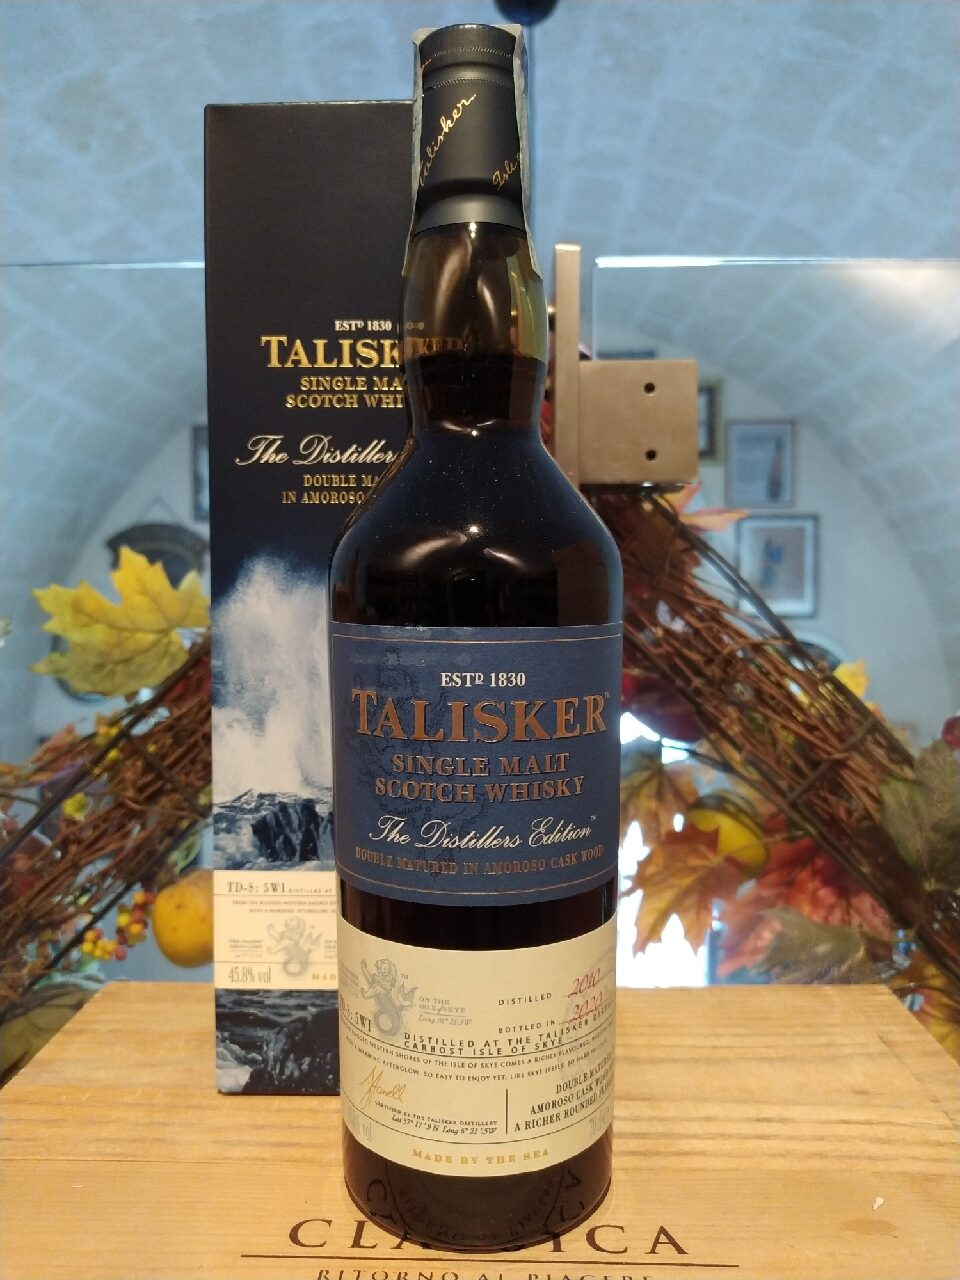 Talisker Single Malt Scotch Whisky Distillers Edition 2020